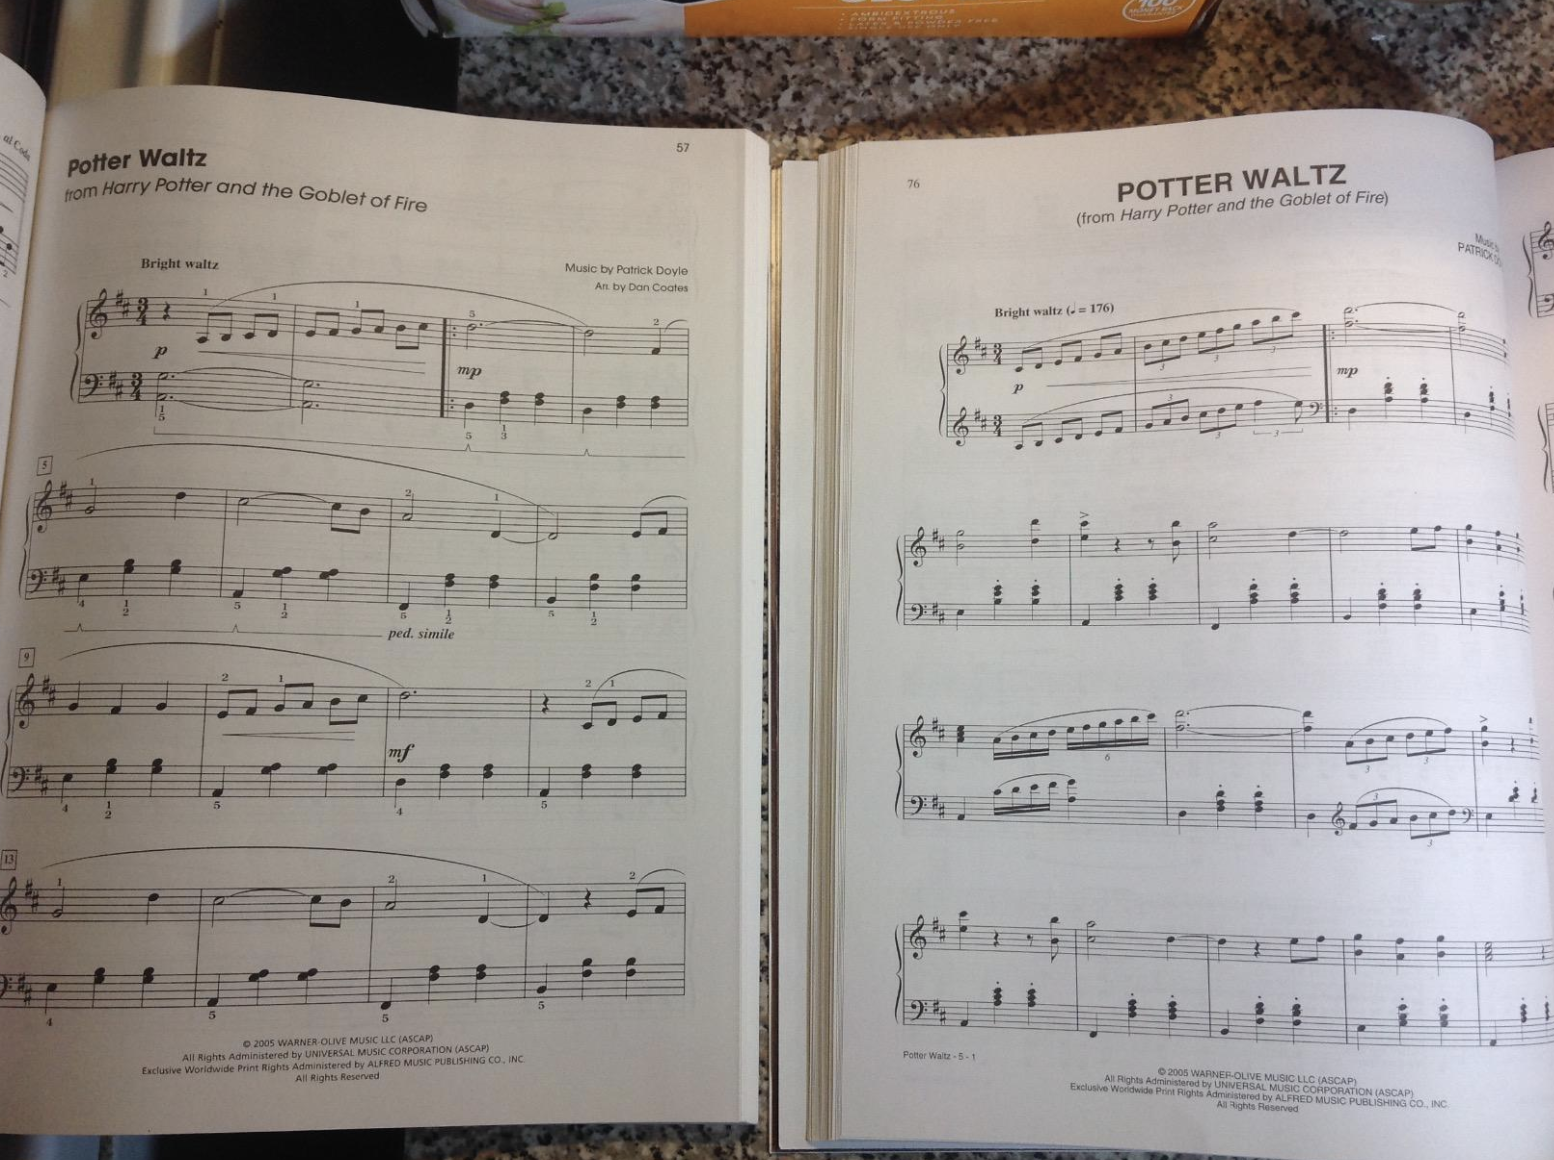 reviewer photo of sheet from music book